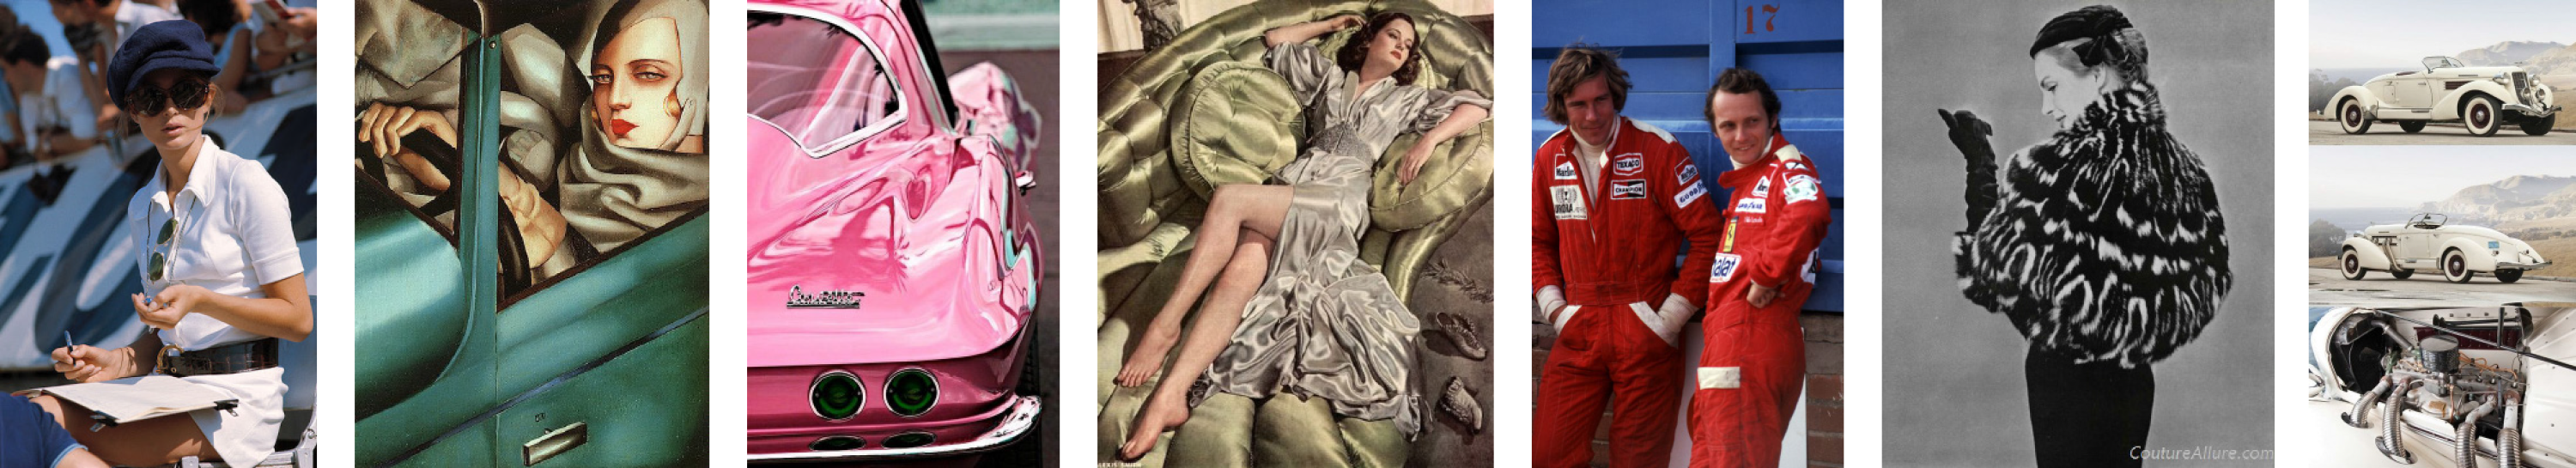 """the title """"GEAR"""" in a motorsports inspired font, above fake sponsor logos designed by Nina Britschgi, in the background Tamara de Lempicka's 1929 painting """"Autoportrait"""", a self portrait of her wearing a grey cap while sitting in a green Bugatti."""